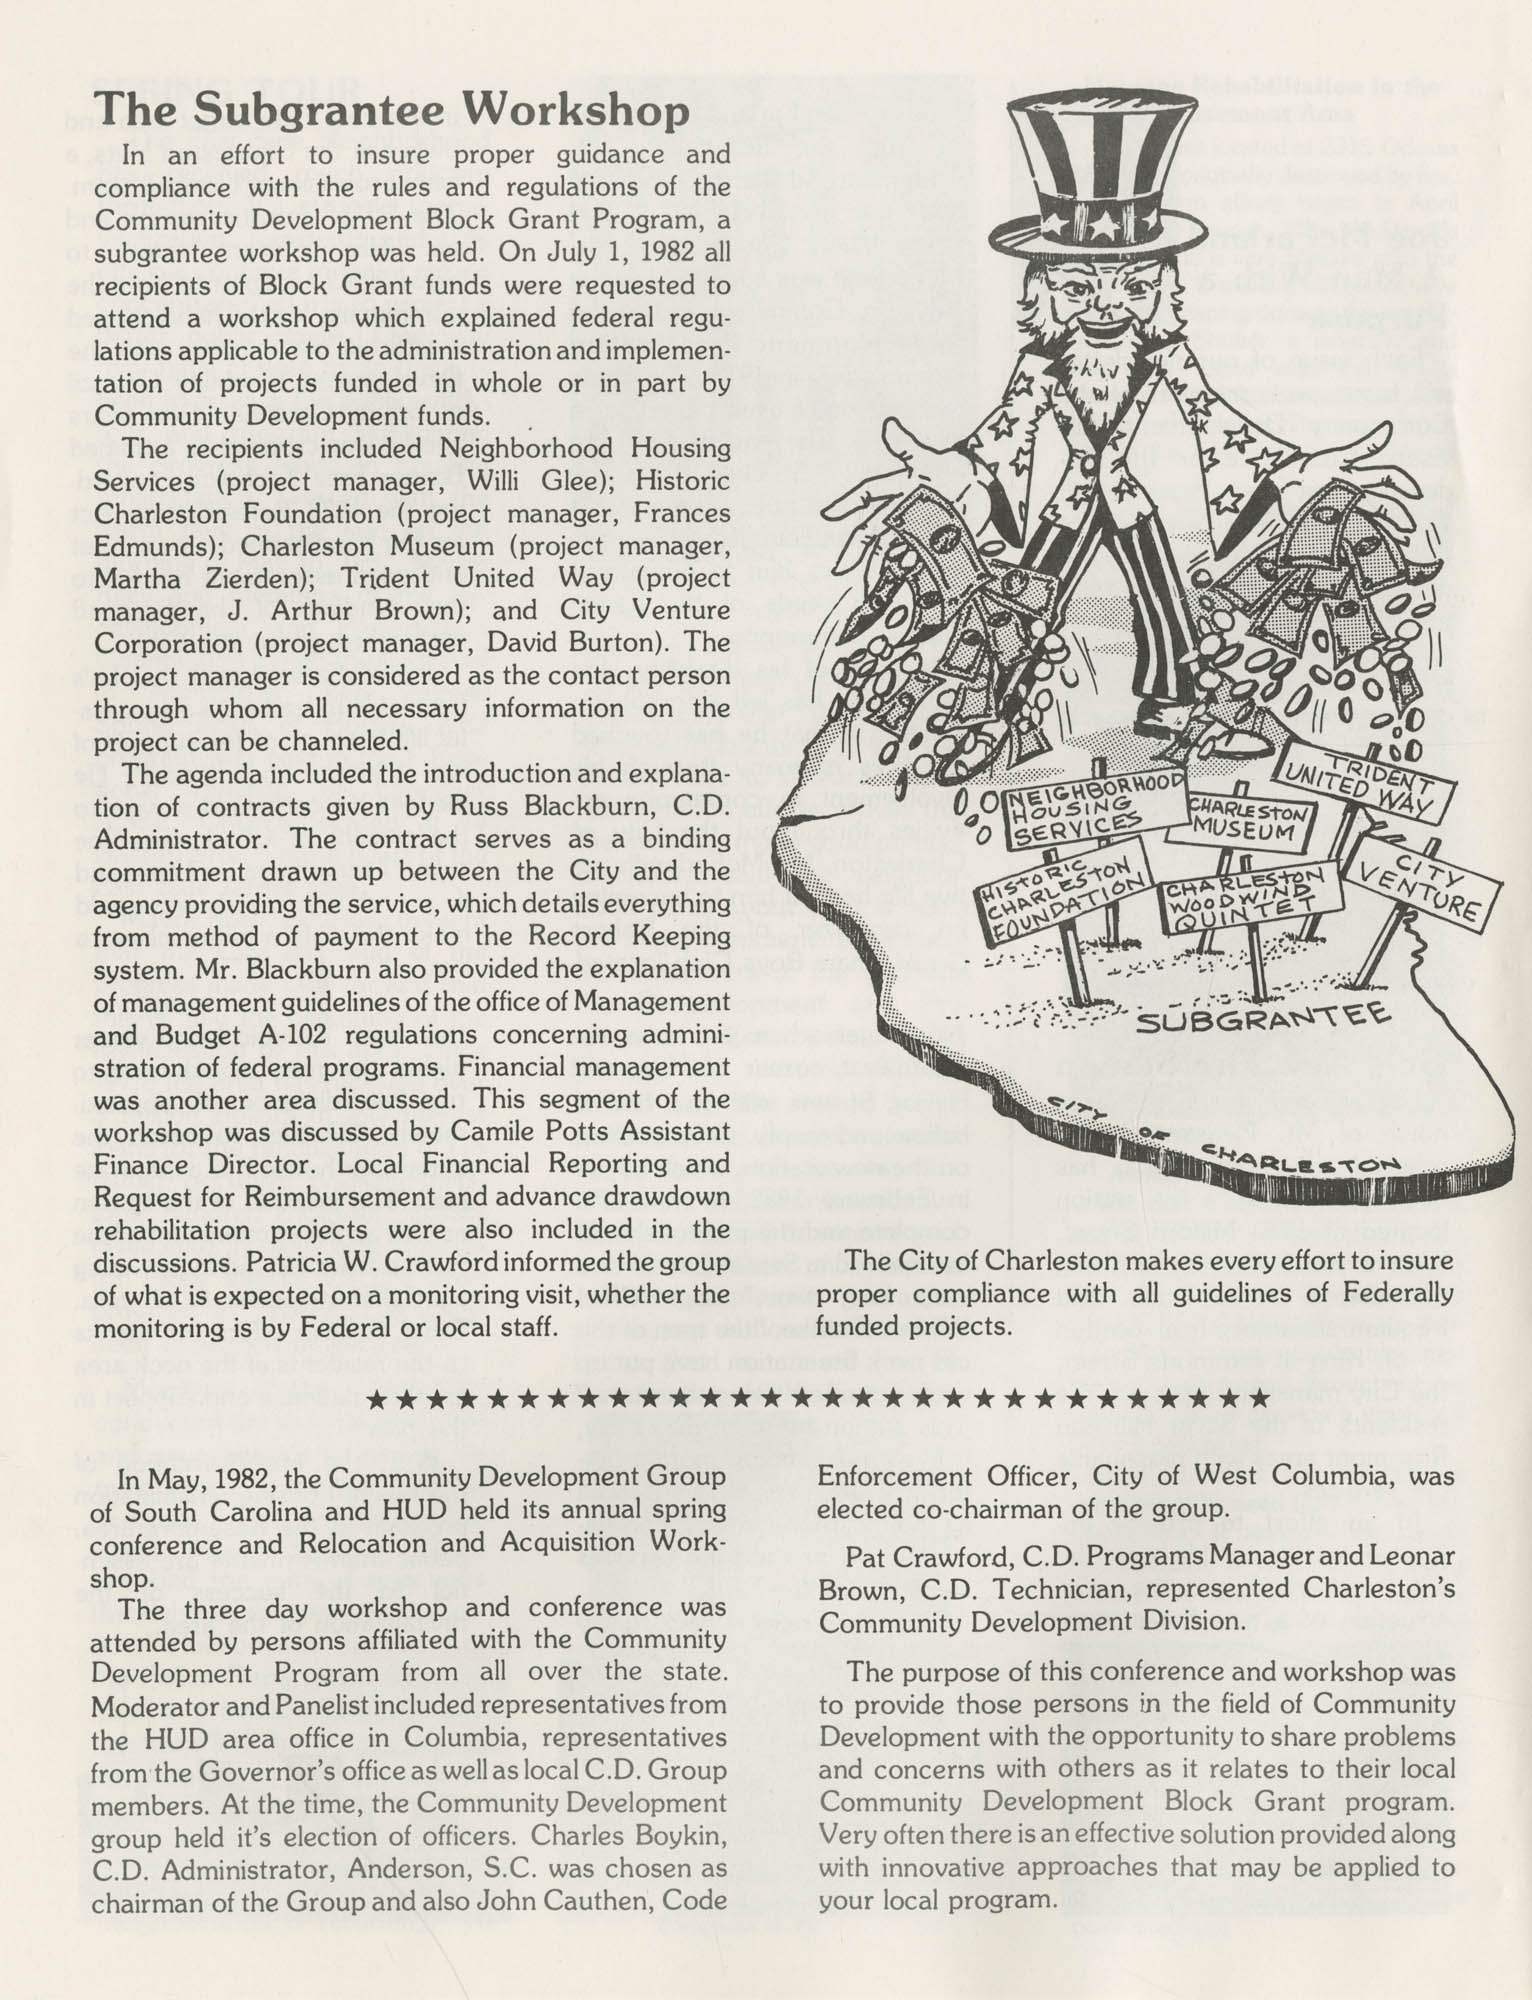 C. D. Newsletter, A City of Charleston Community Development Publication, Summer Issue - 1982, Page 6